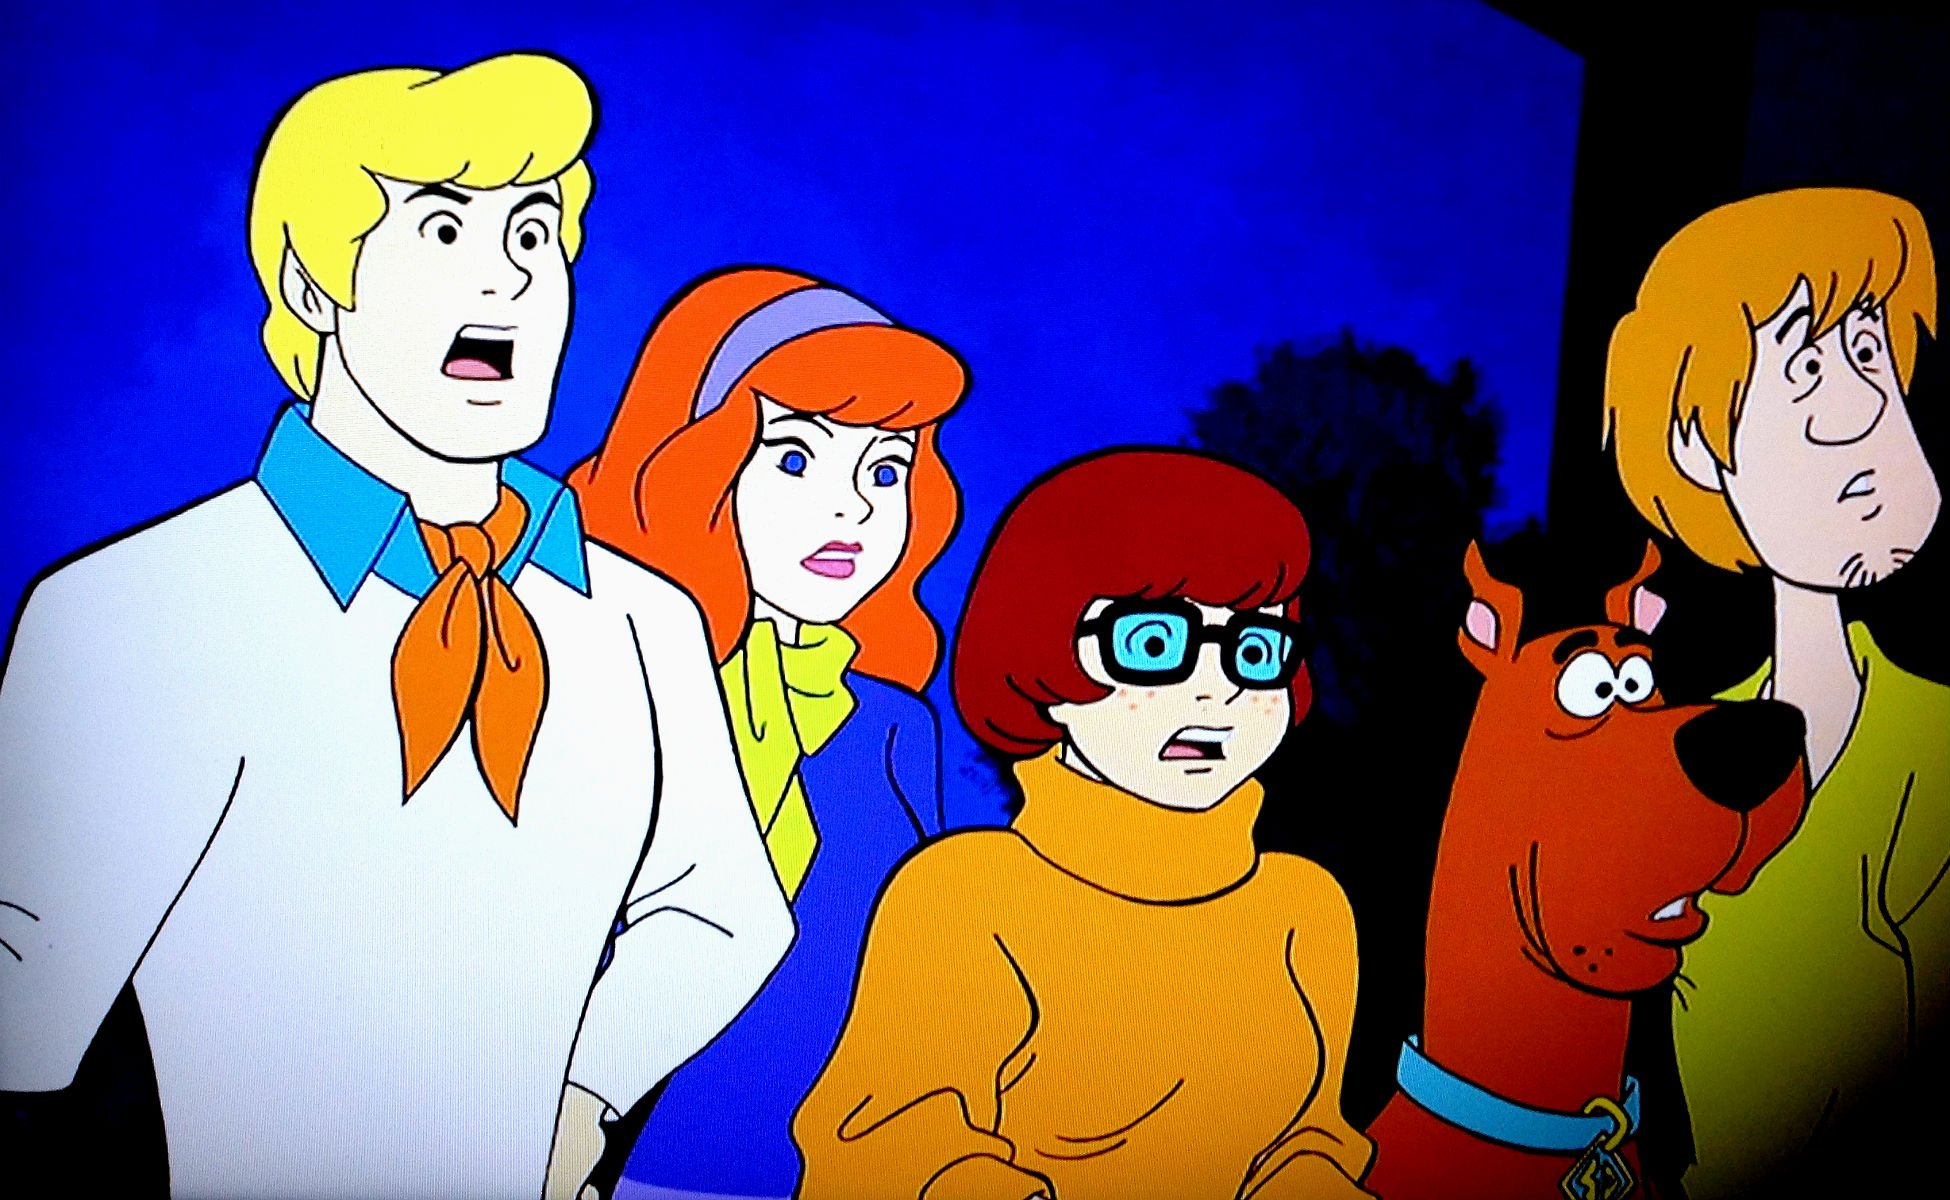 scooby doo thesis As the warner bros logo fully appears, a chunk of it is suddenly bitten off, and scooby-doo is heard giggling a new logo appears, with the letters sd in it (for scooby-doo), and reading underneath a mystery inc company.